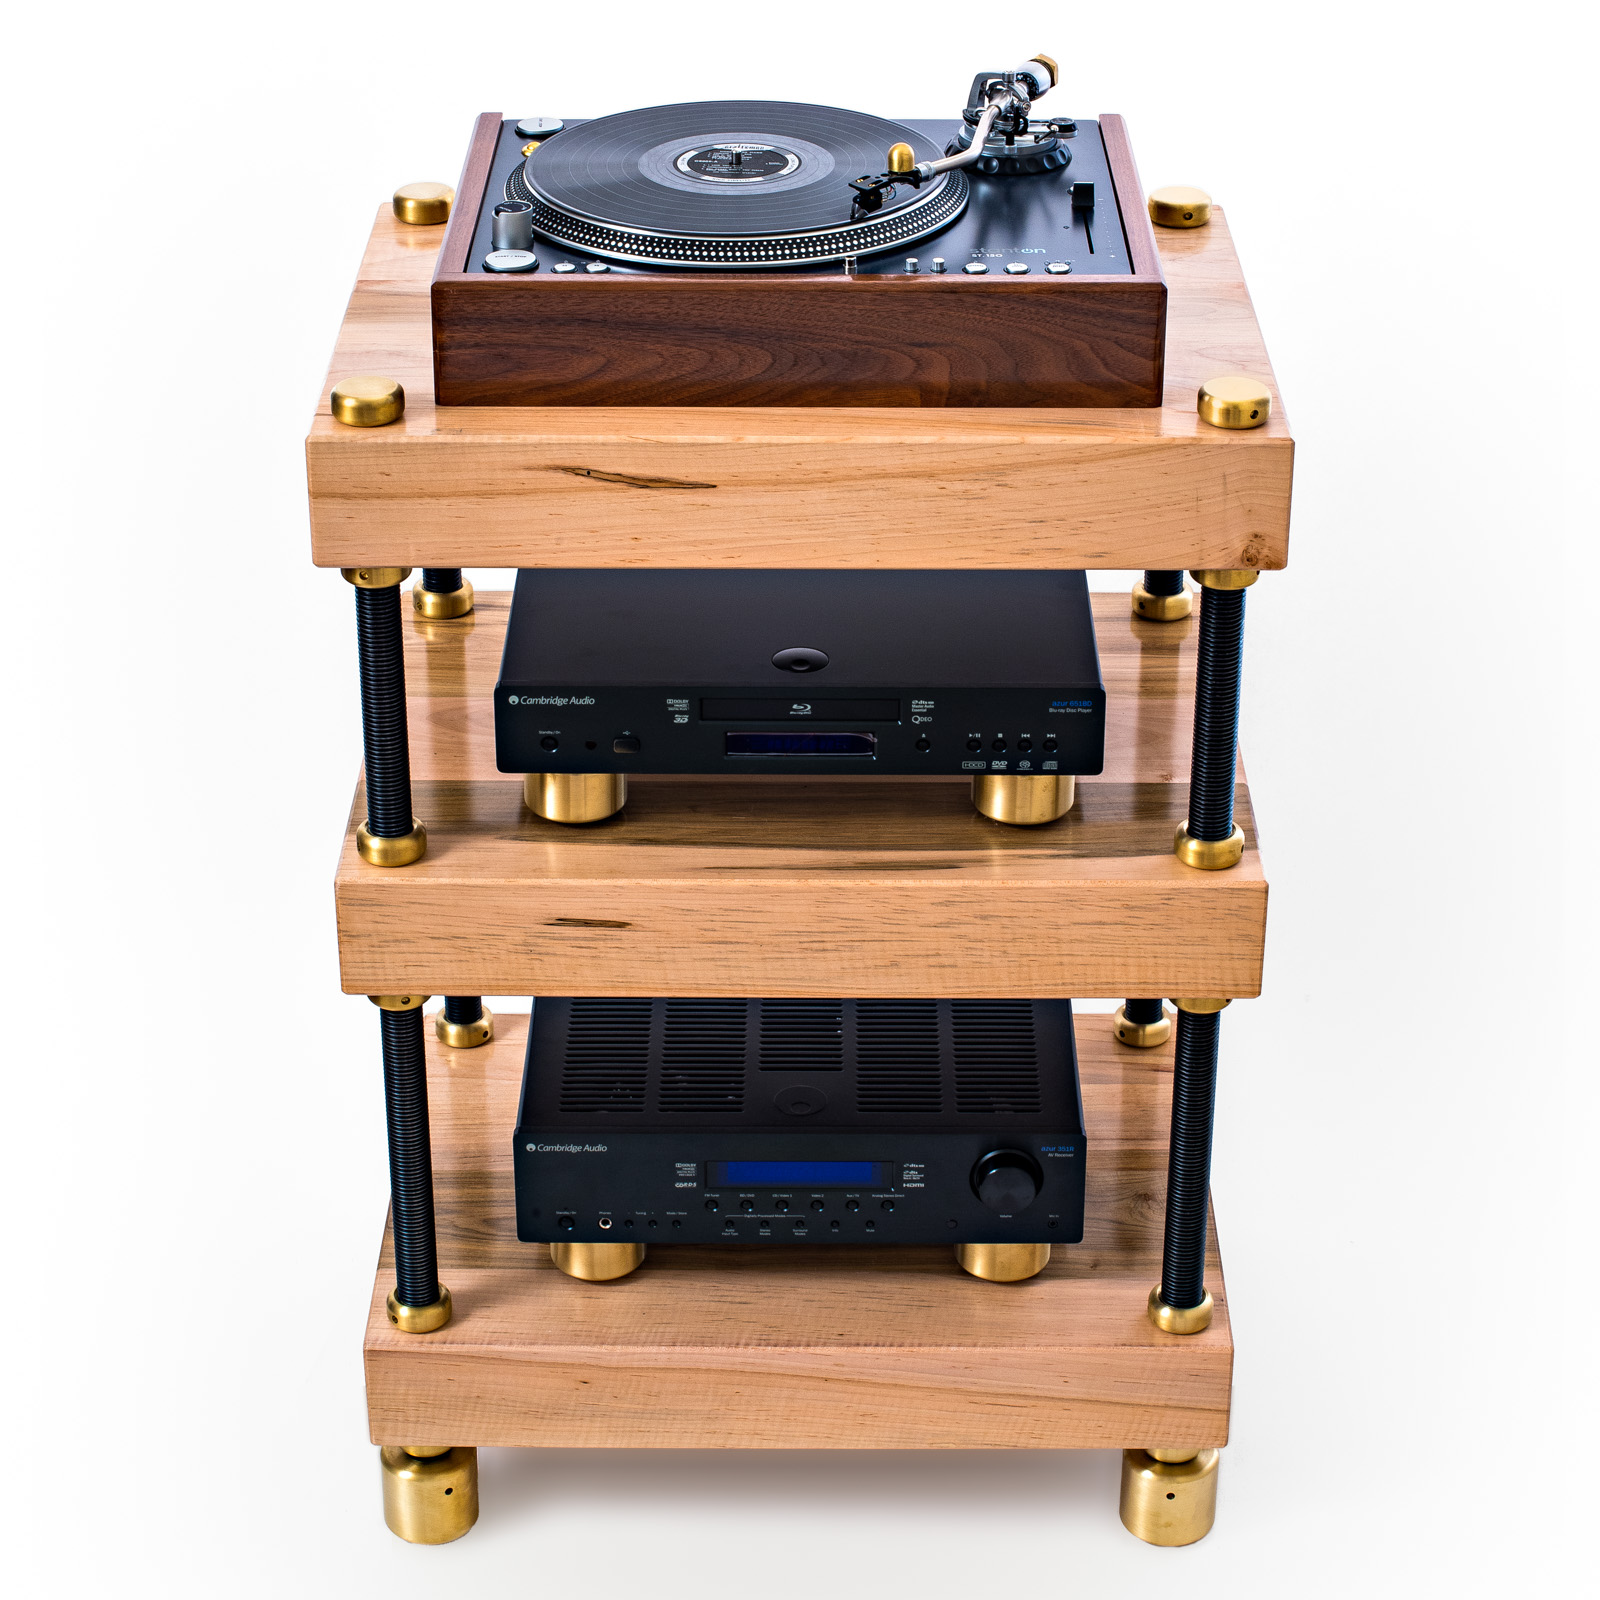 Charmant The Mapleshade Store   Music Without Compromise Since 1990